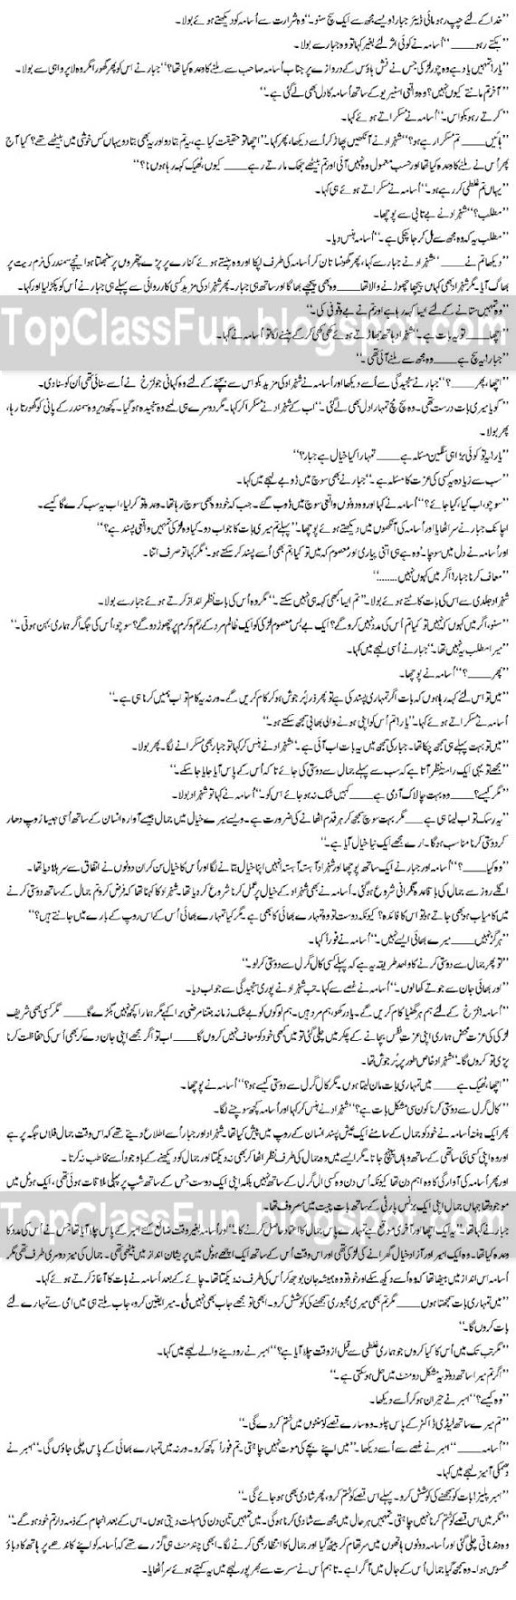 Romantic Urdu Novel - MOHABBAT – By Shahina Chanda Mehtab Page 9